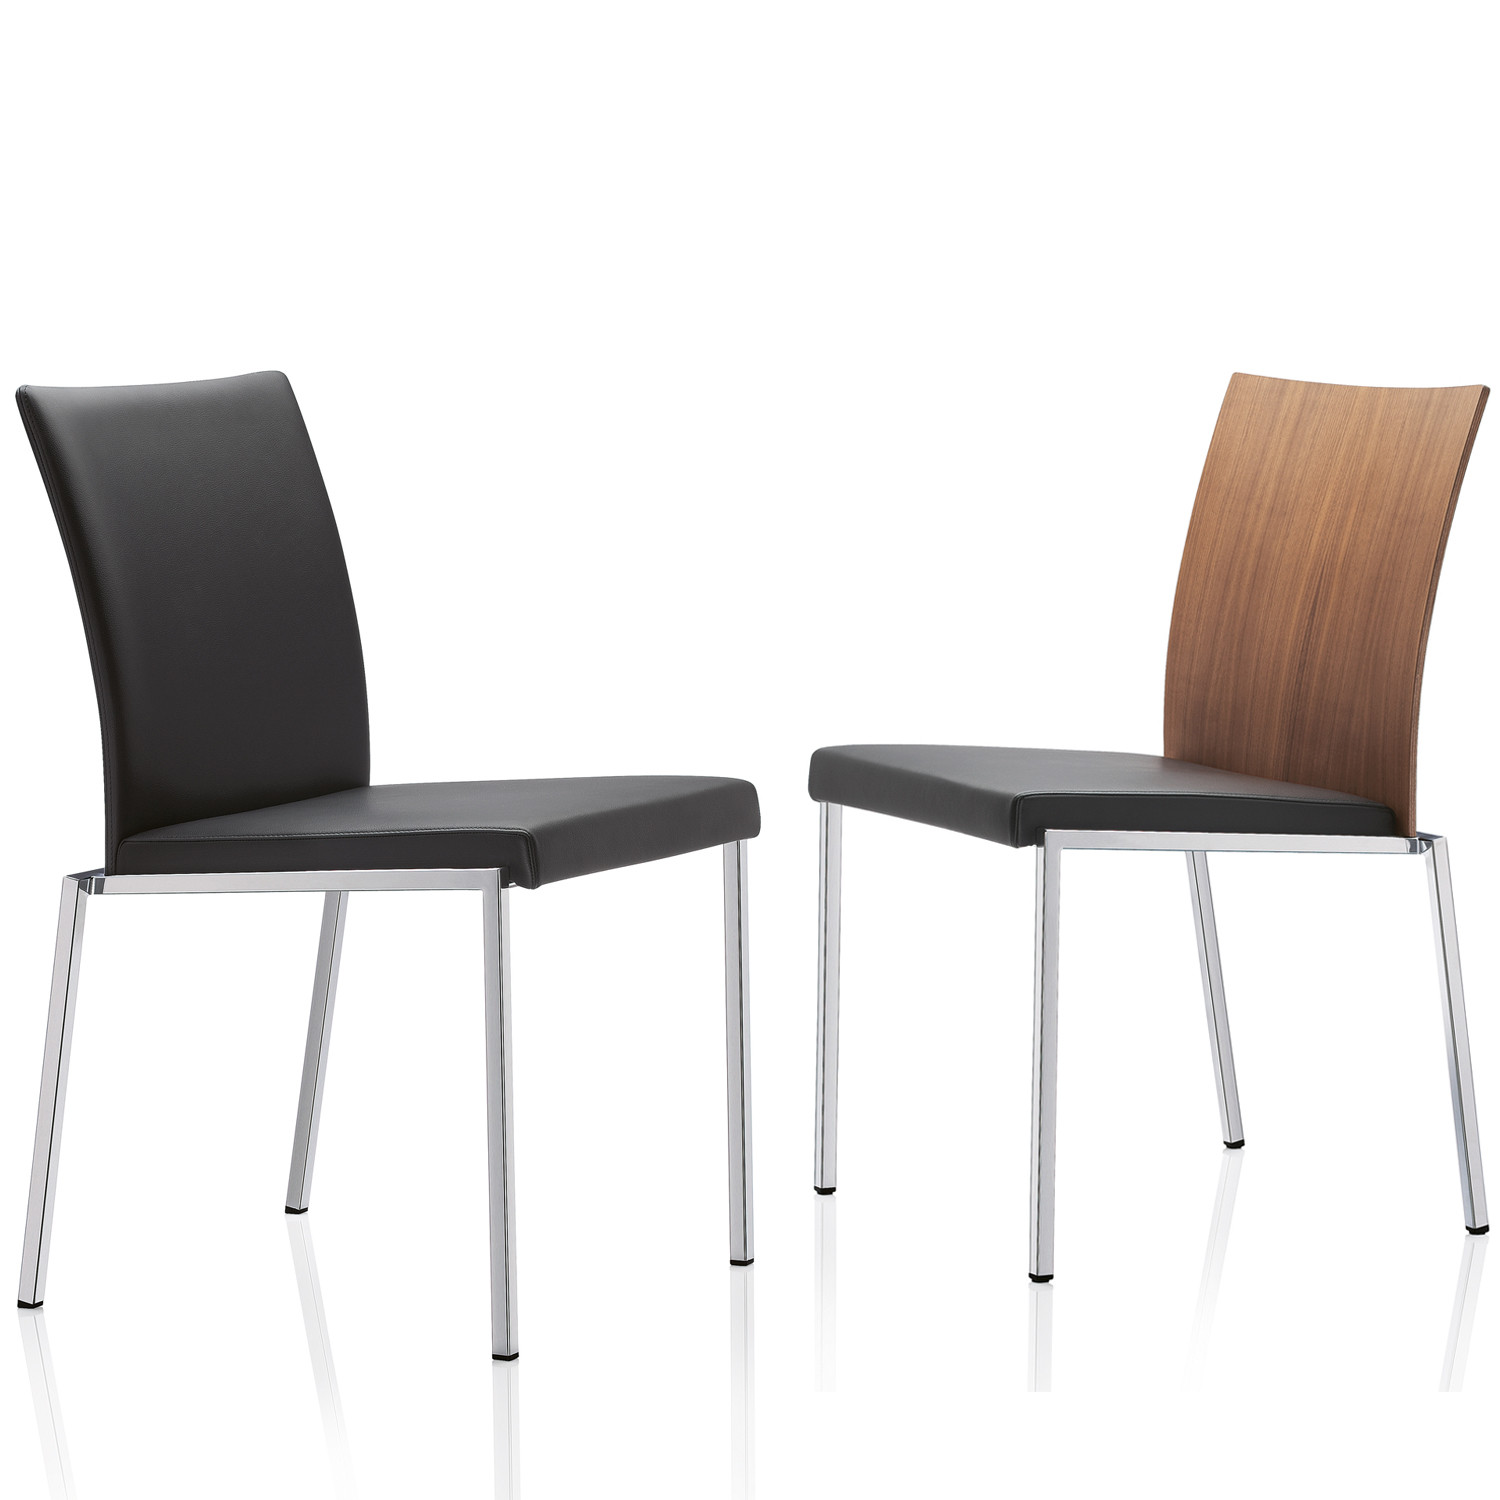 MilanoClassic Chairs